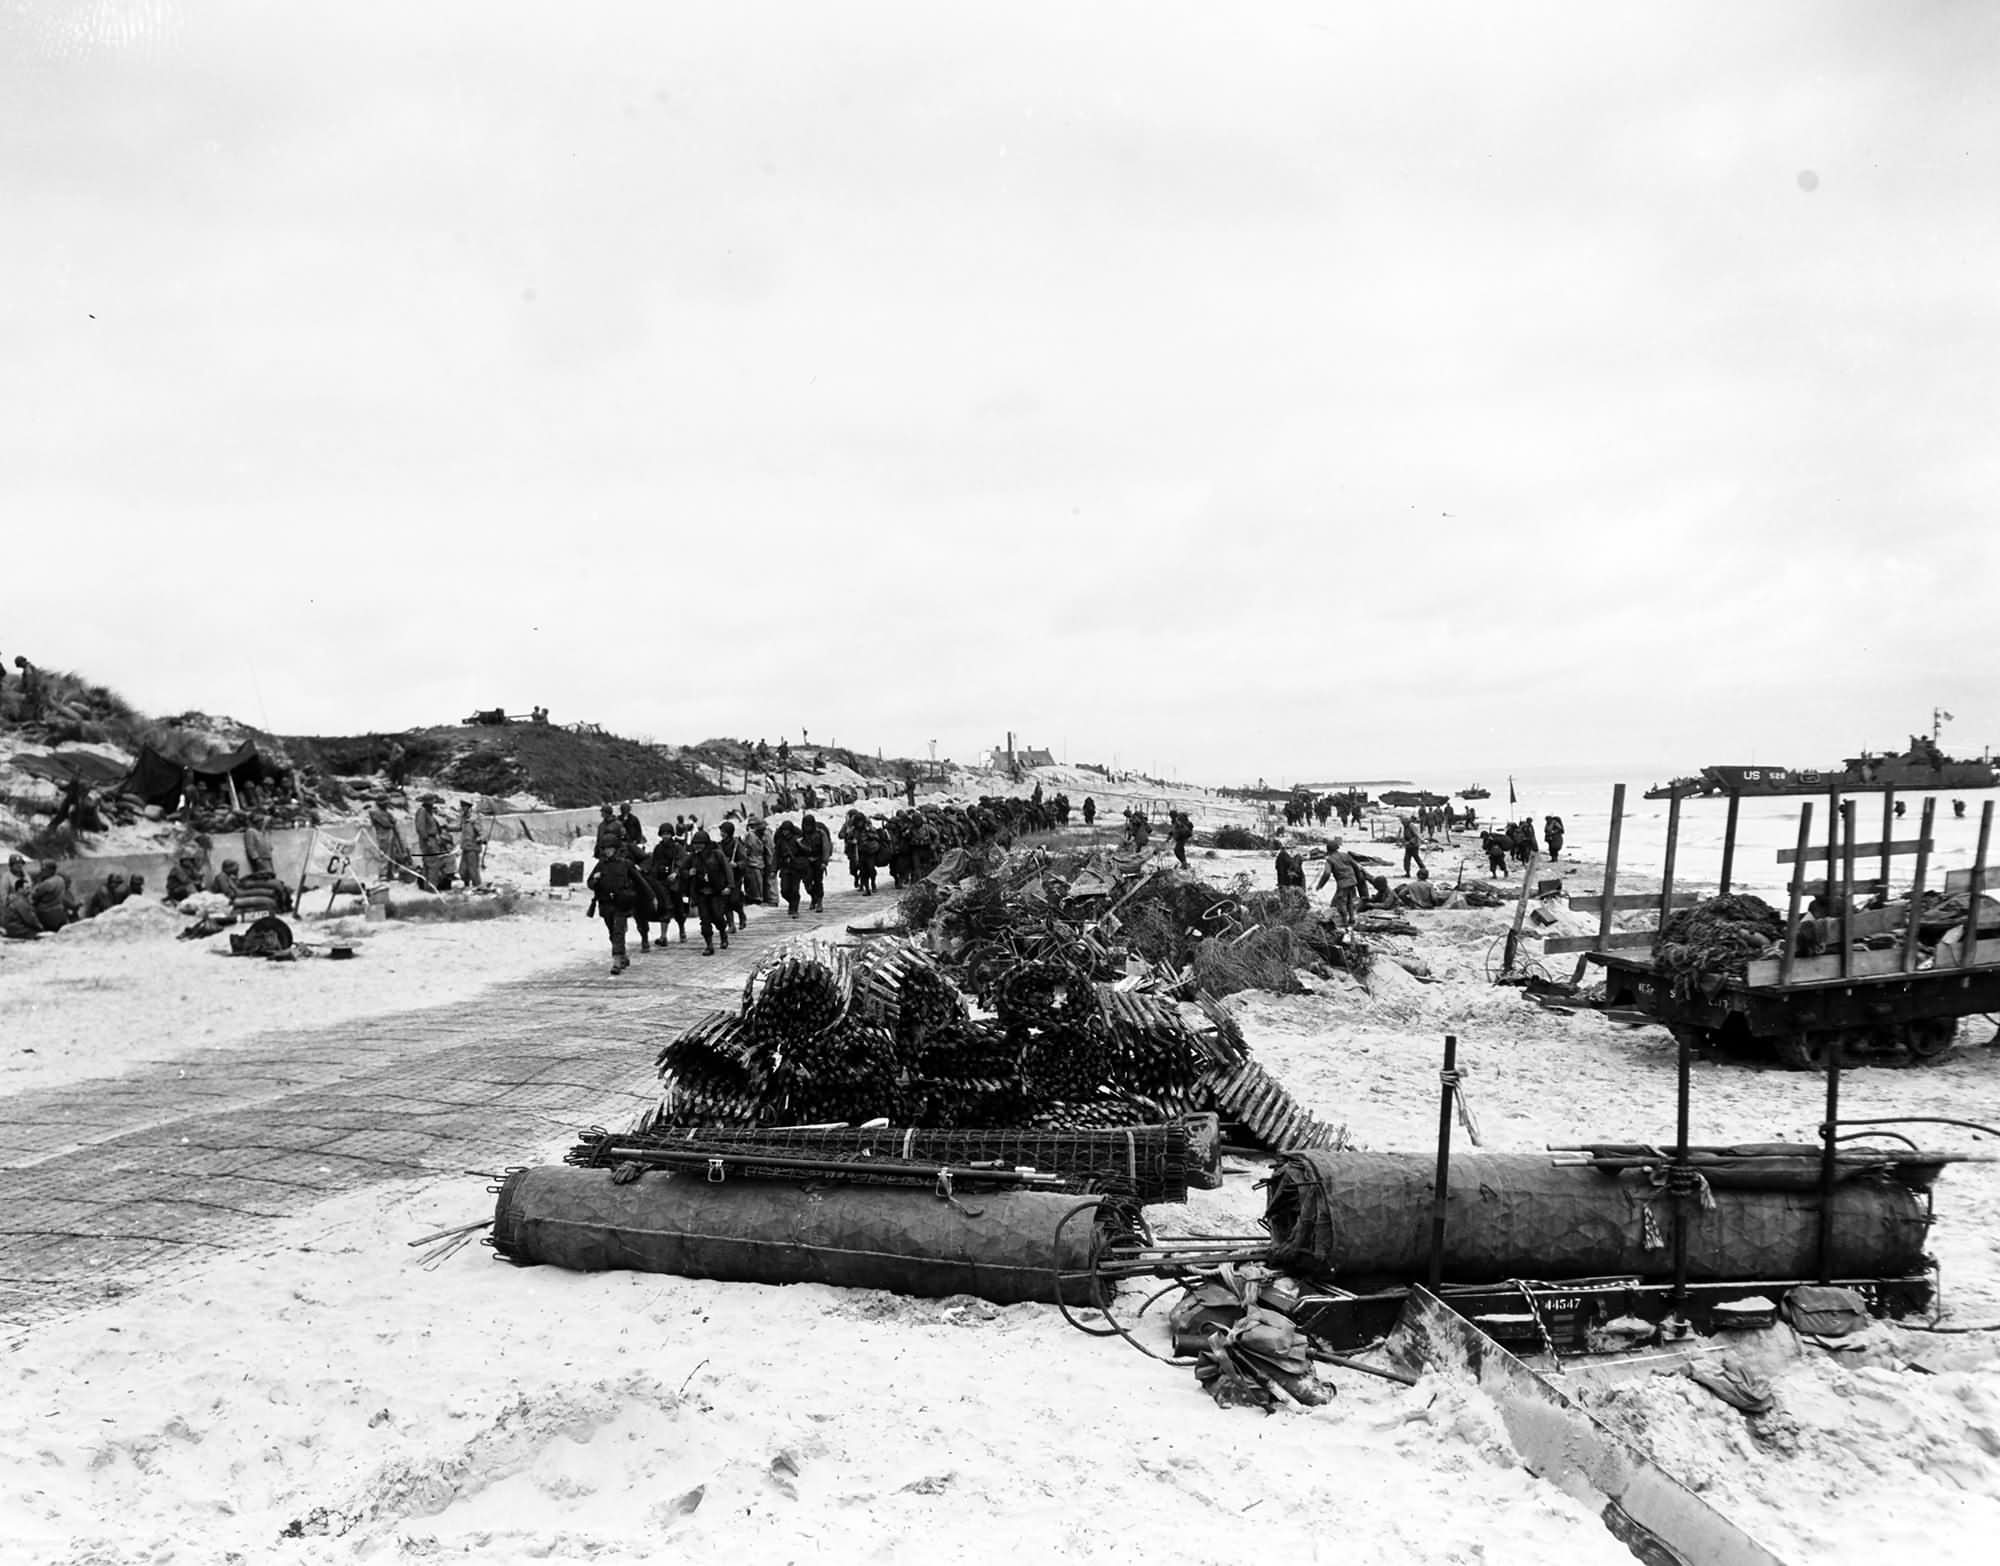 Scene on Utah Beach with troops marching up the road 9 June 1944